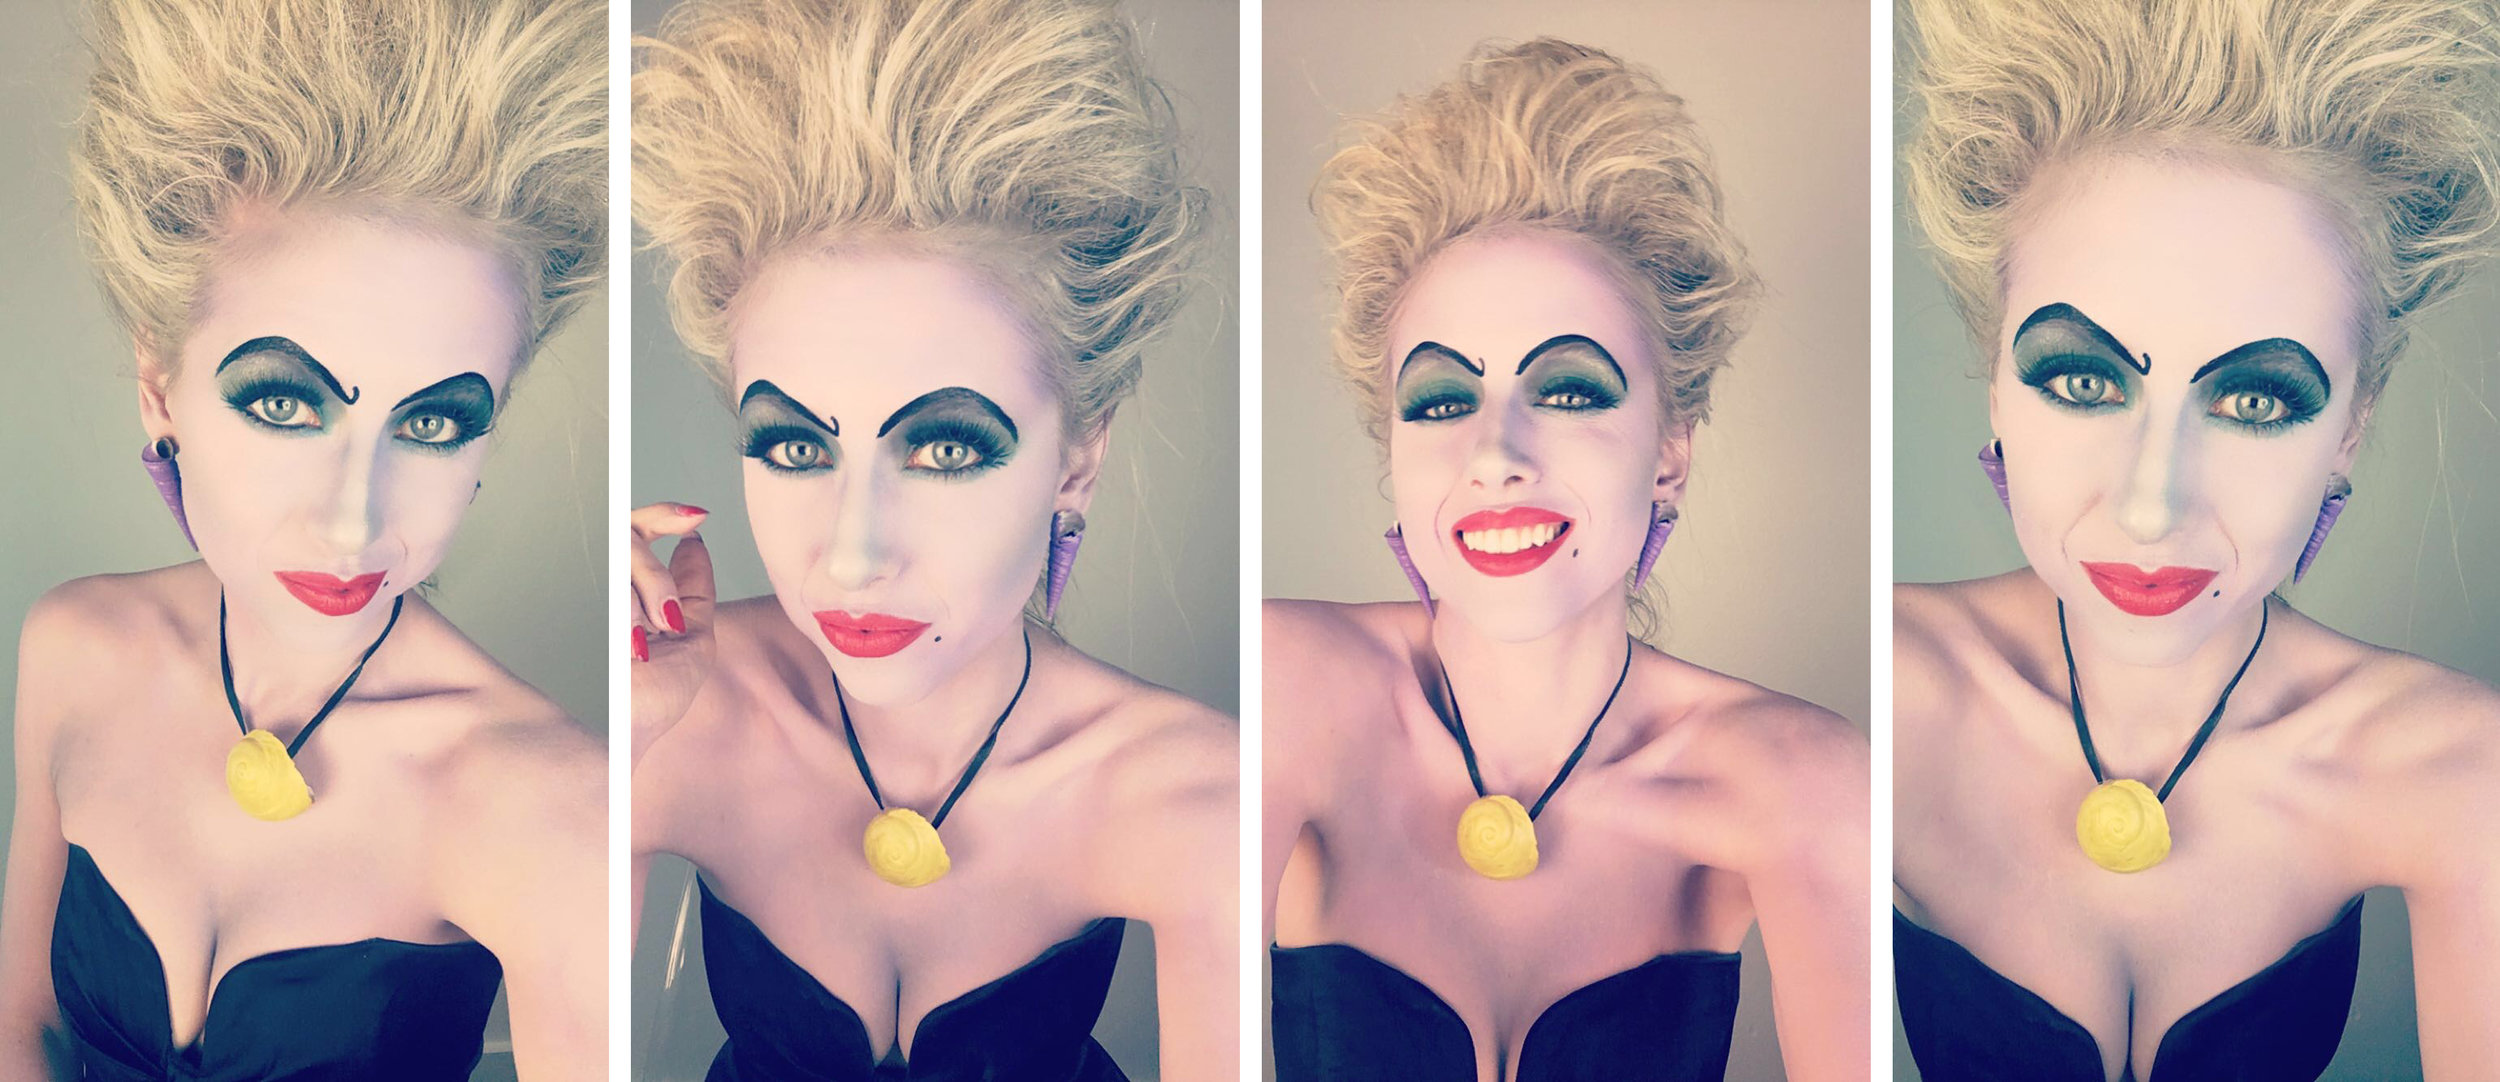 superholly-as-ursula.jpg